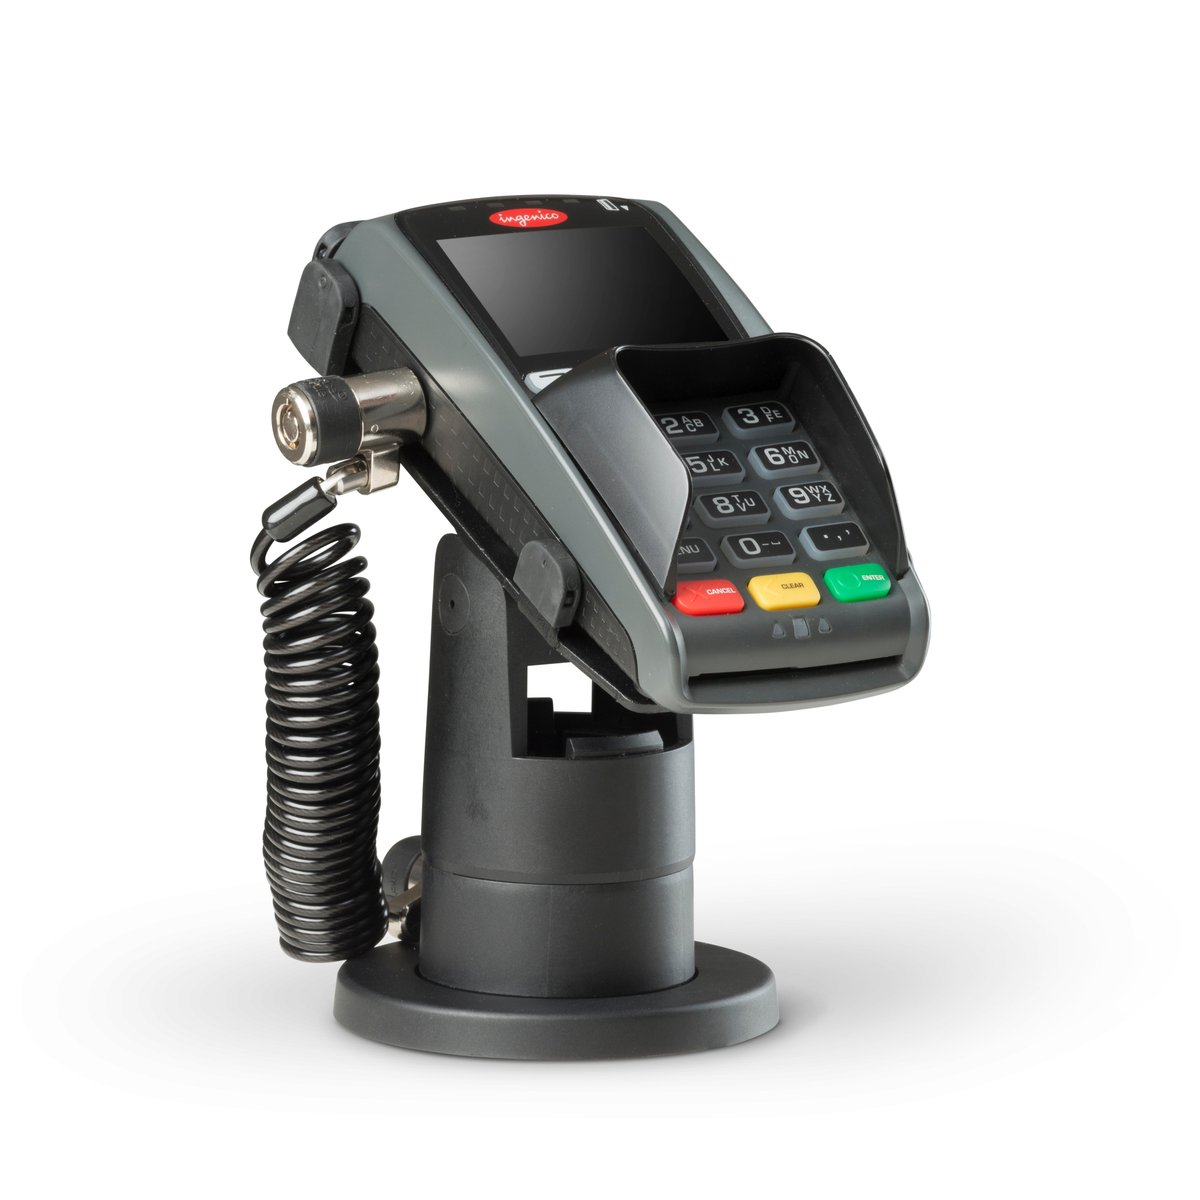 """test Twitter Media - RIS says it best """"As data breaches become more commonplace, consumers are demanding increased security from retailers while expecting transparency & honesty from the brands they engage with."""" Protect your payment terminal from breaches with a #PCI compliant mount & security lock. https://t.co/nvfwhaO0iH"""